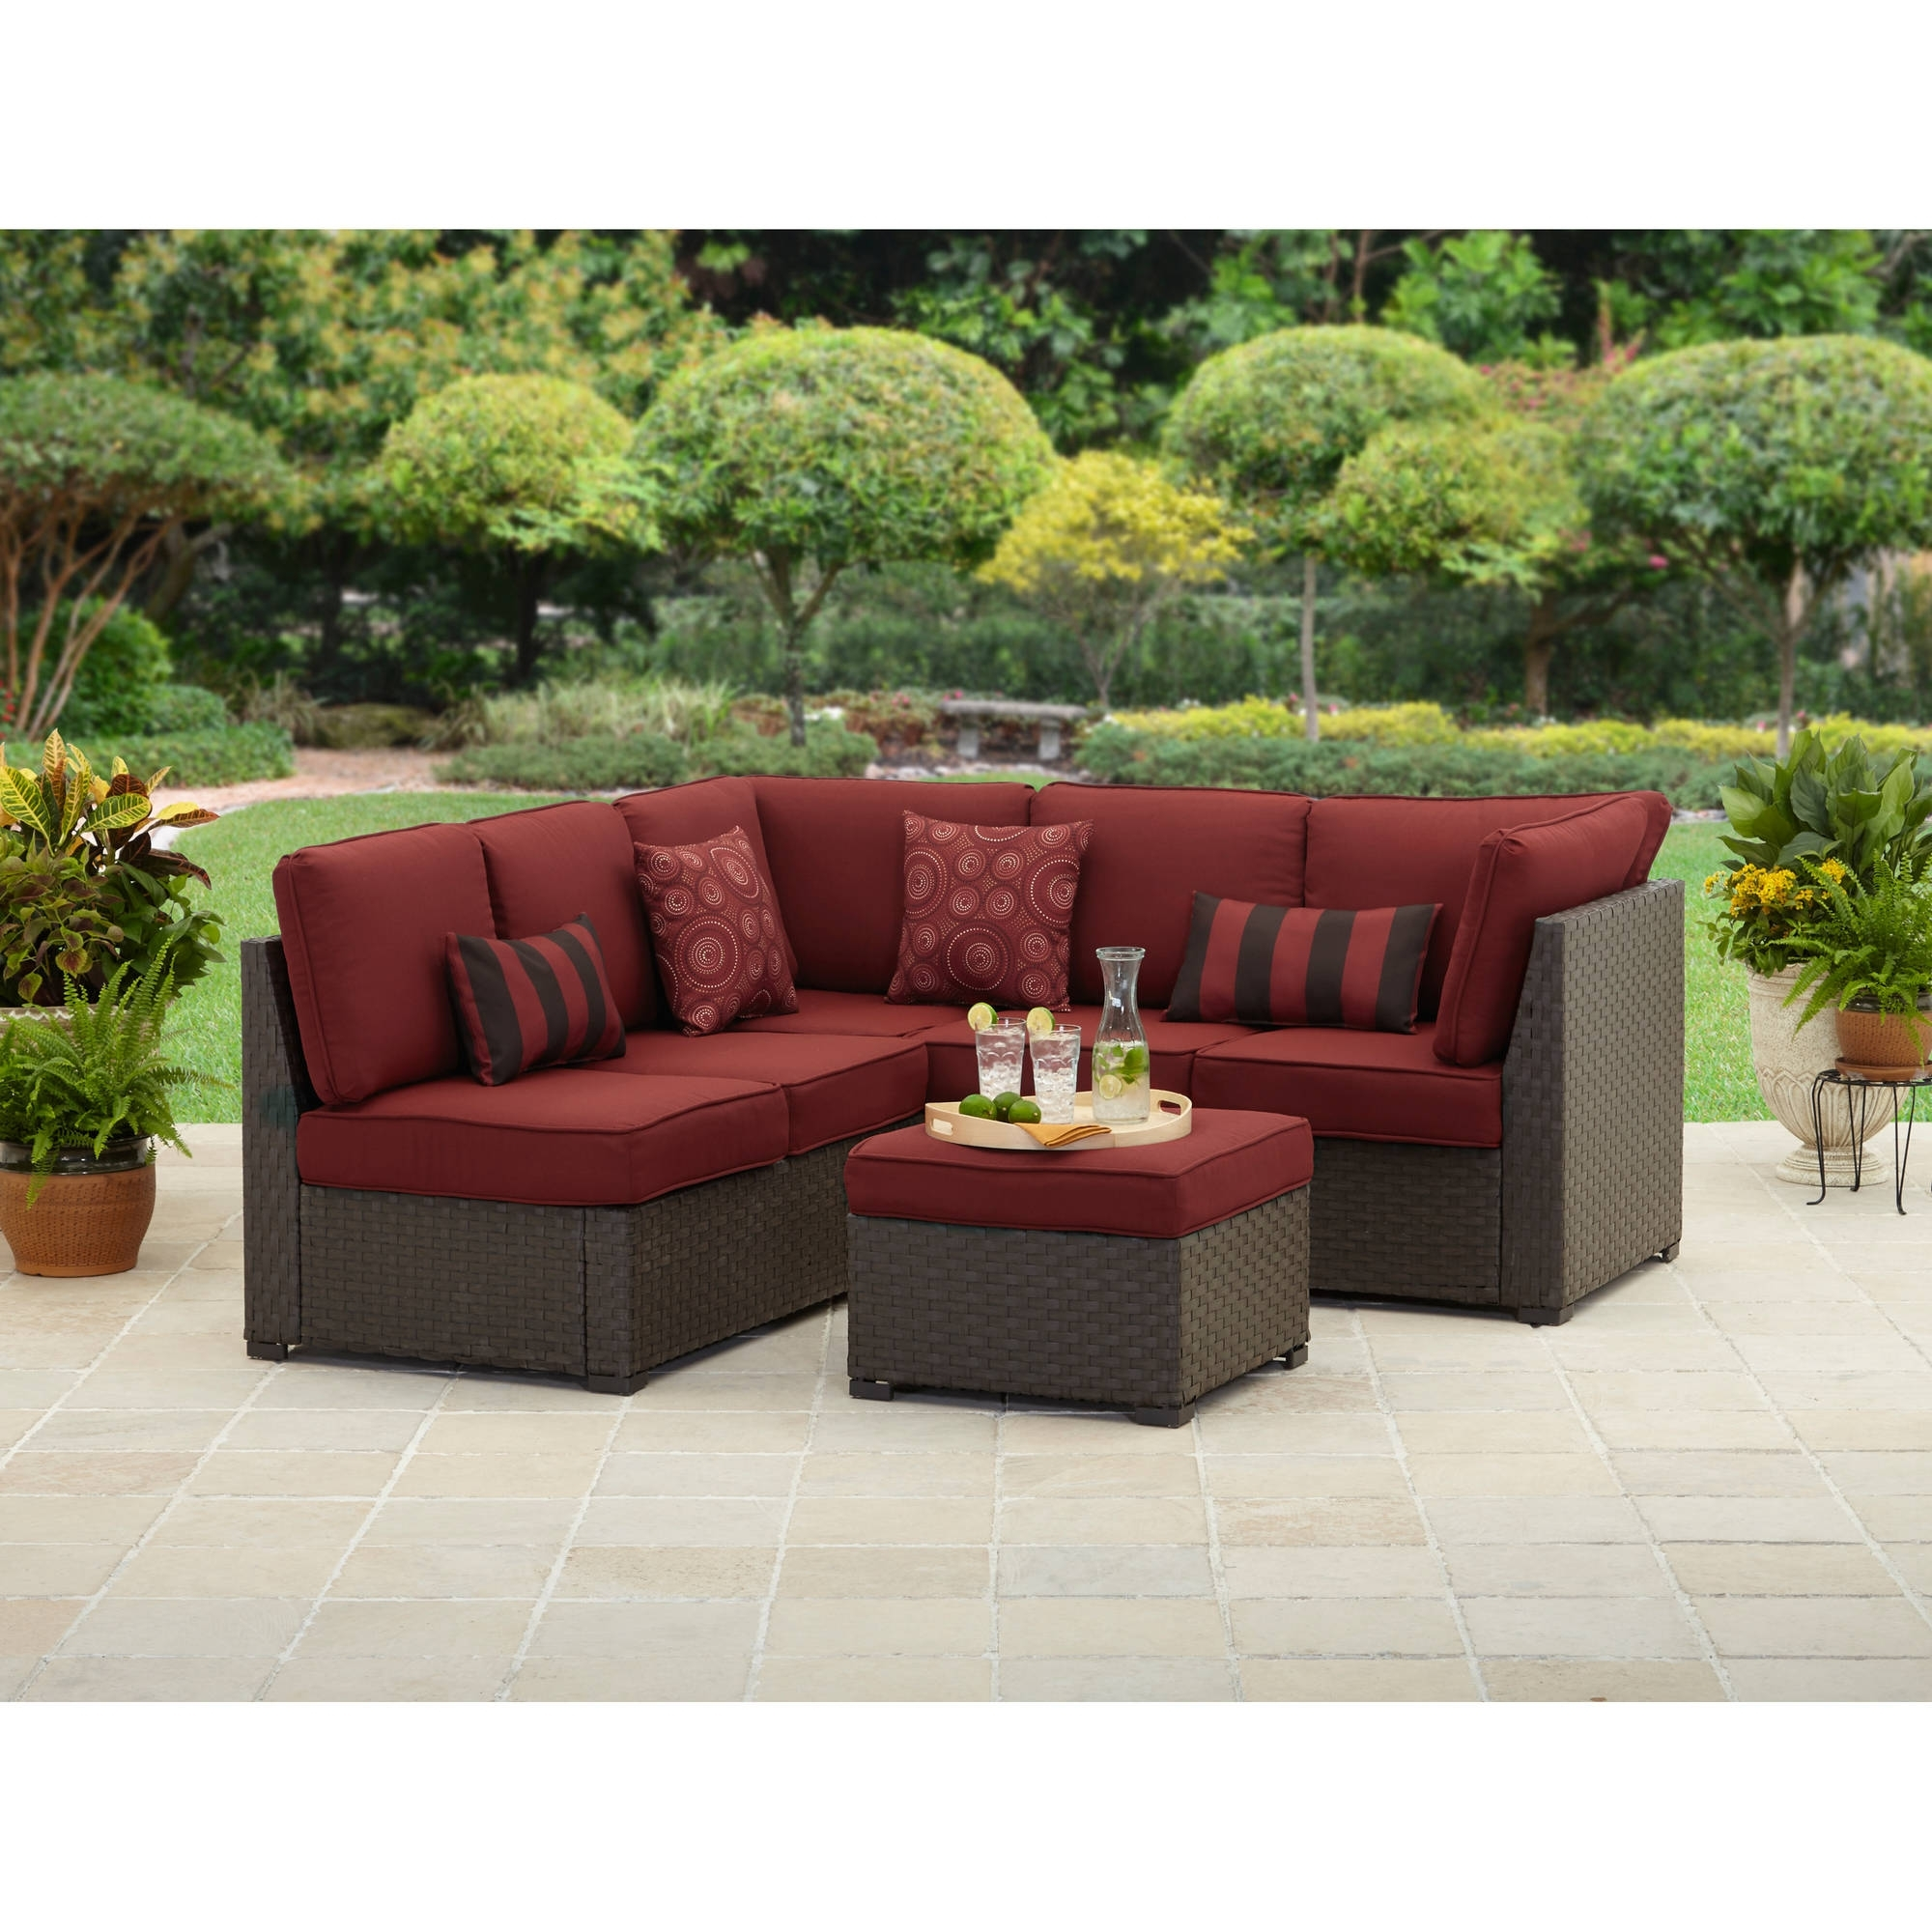 Better Homes And Gardens Rush Valley 3 Piece Outdoor Sectional Within Current Patio Sofas (View 5 of 15)